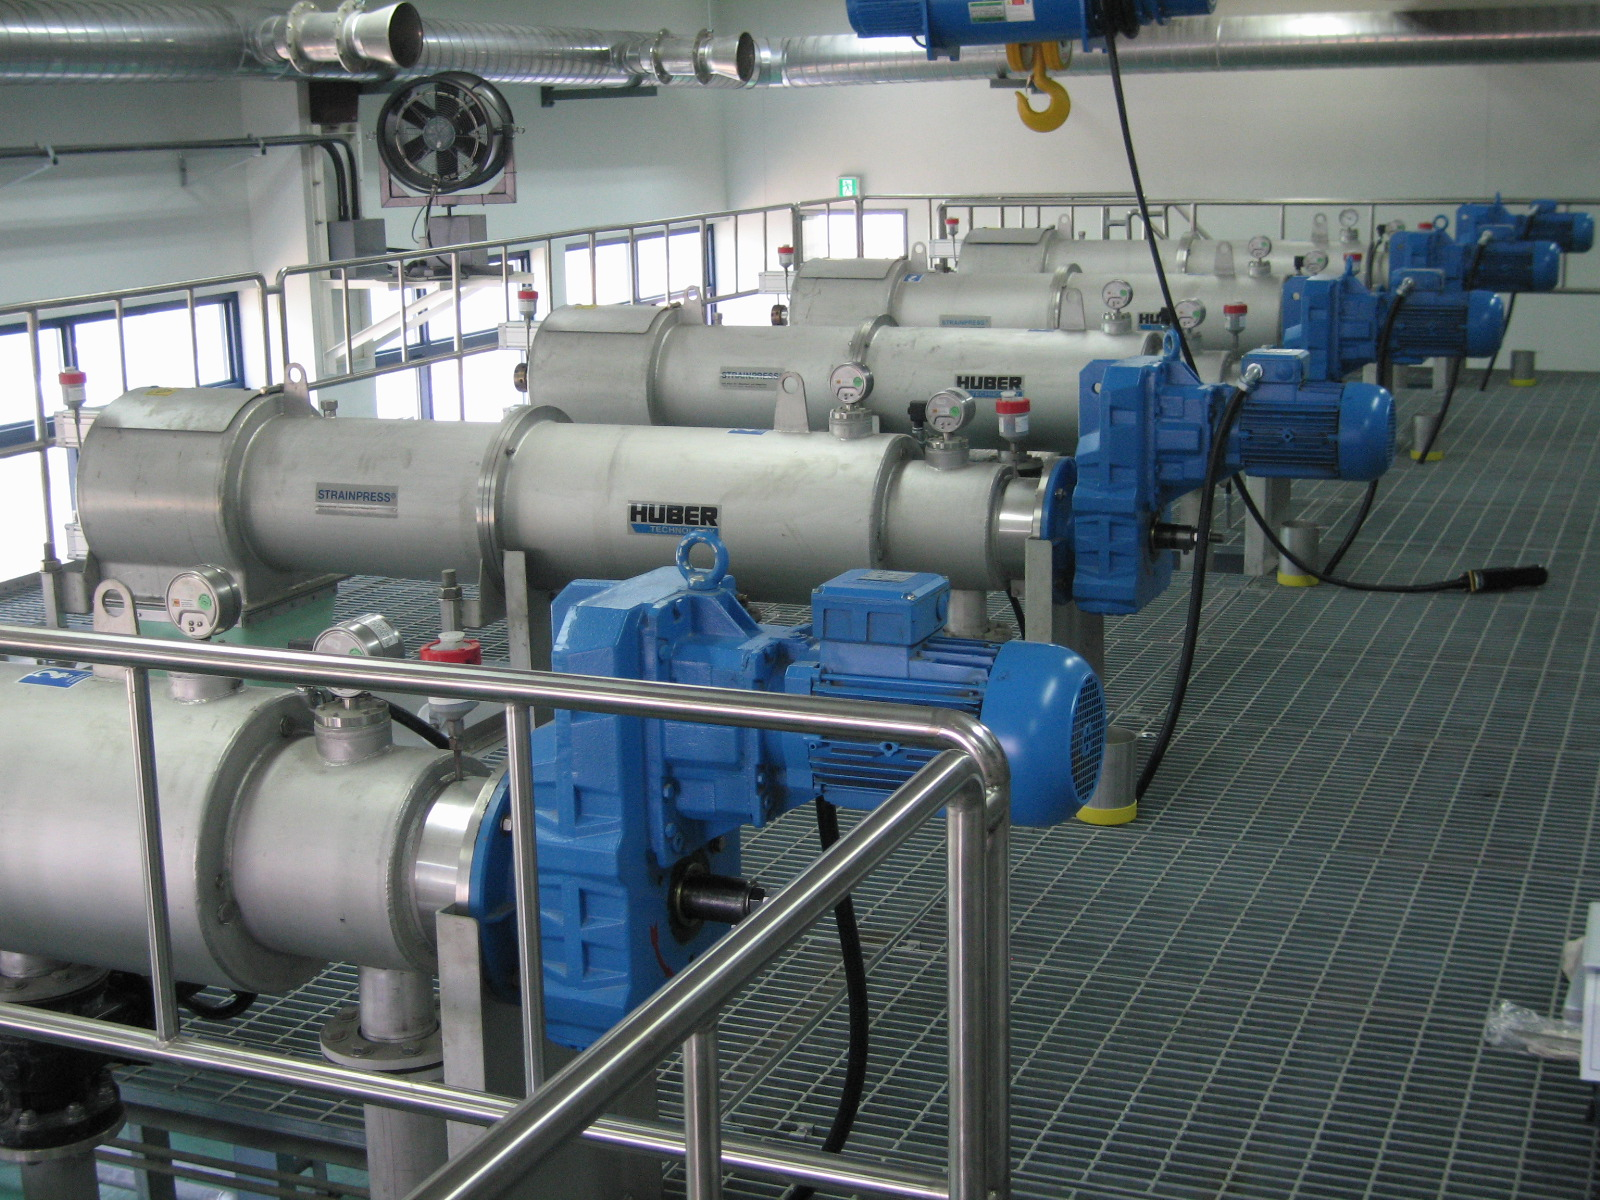 Technology helps produce green energy from sewage treatment plant